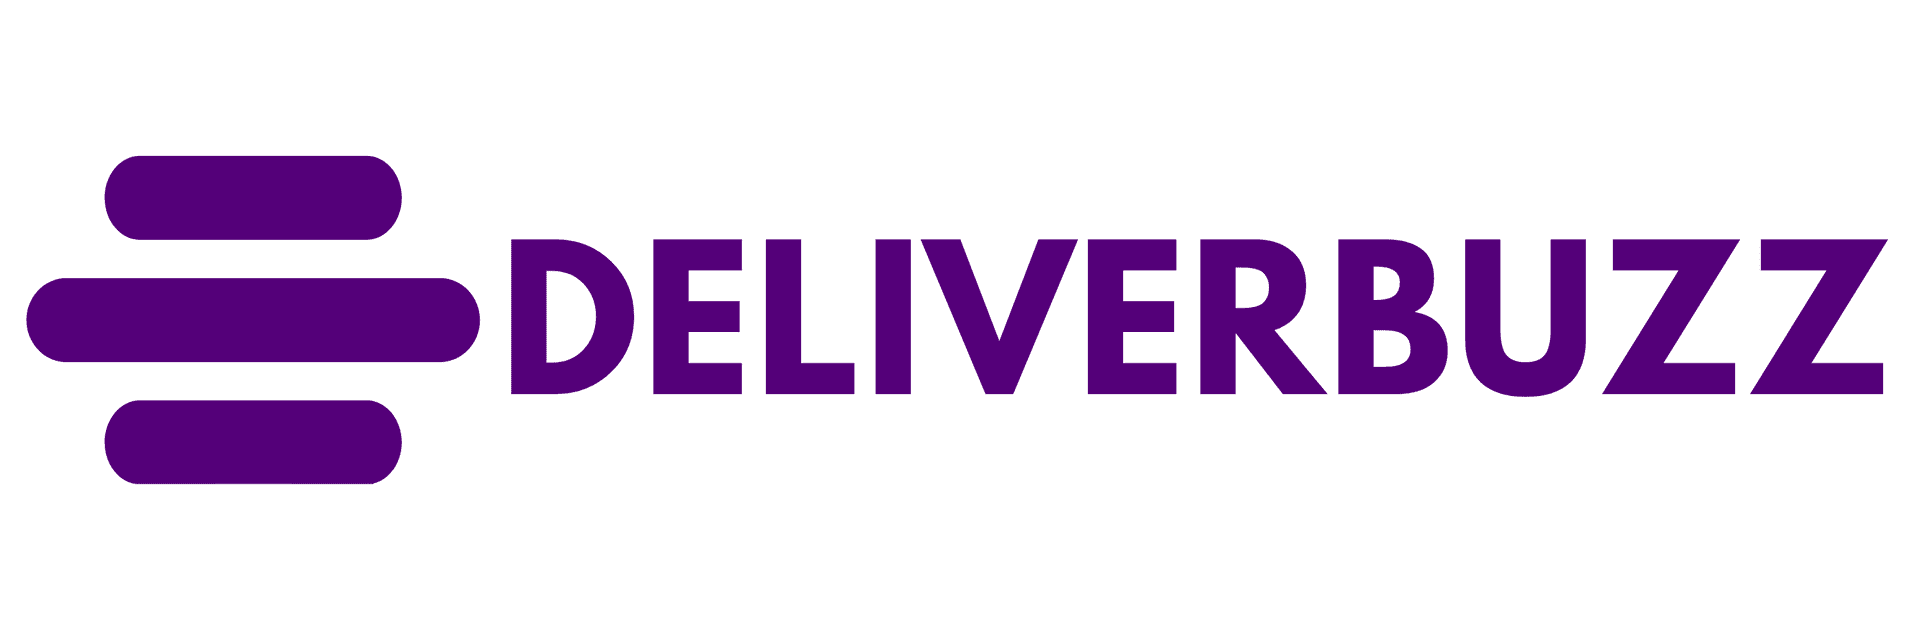 Delivebuzz logo